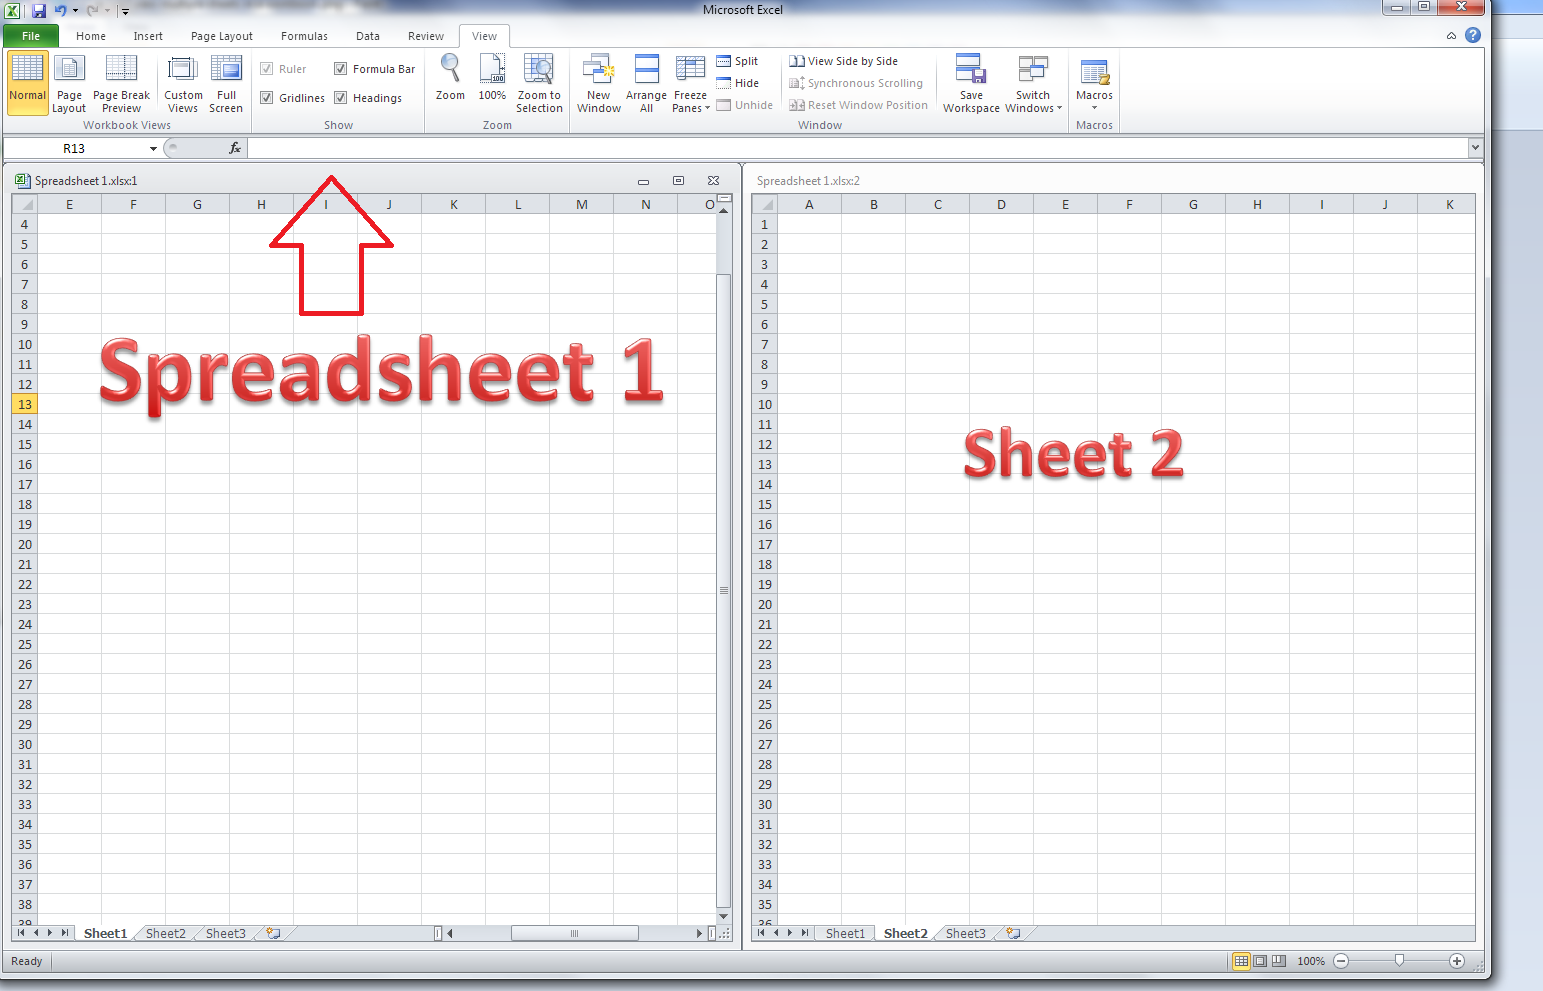 worksheet Worksheet Excel Definition how do i view two sheets of an excel workbook at the same time return to single sheet view